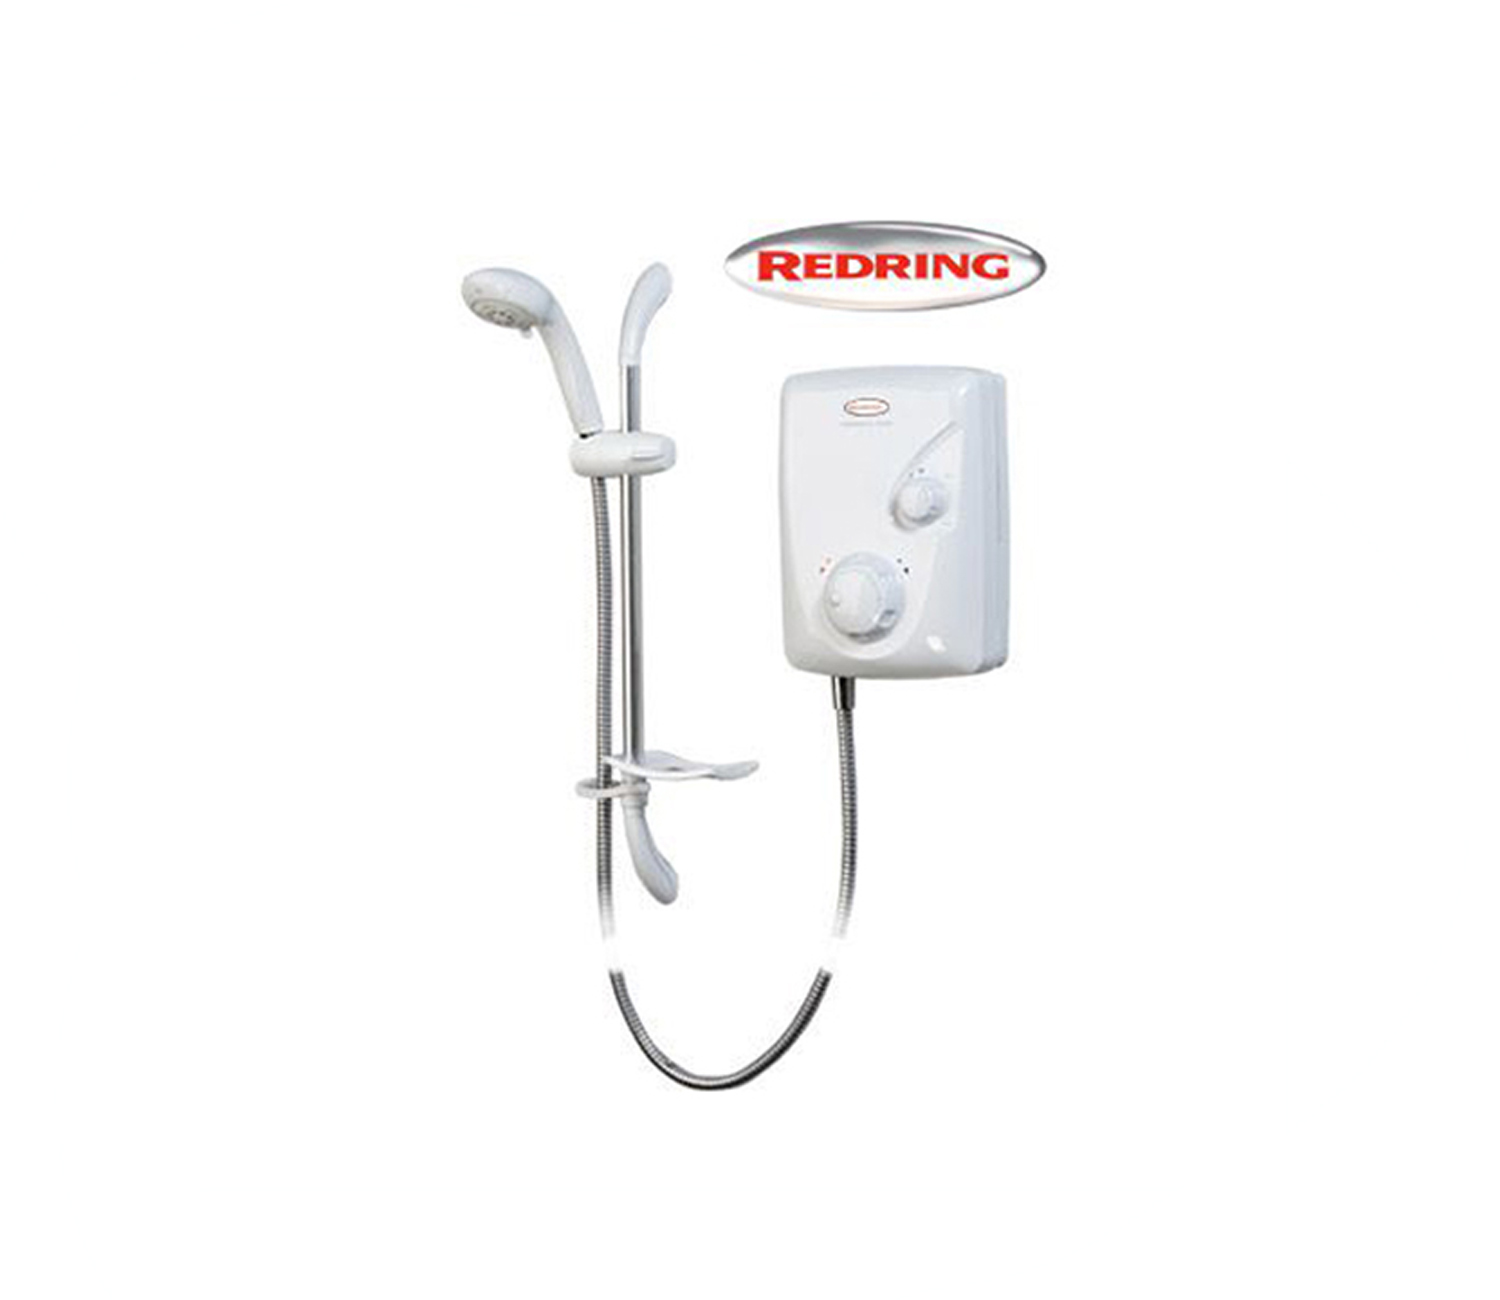 Redring Expressions 520TS Thermostatic Power Shower – White Color